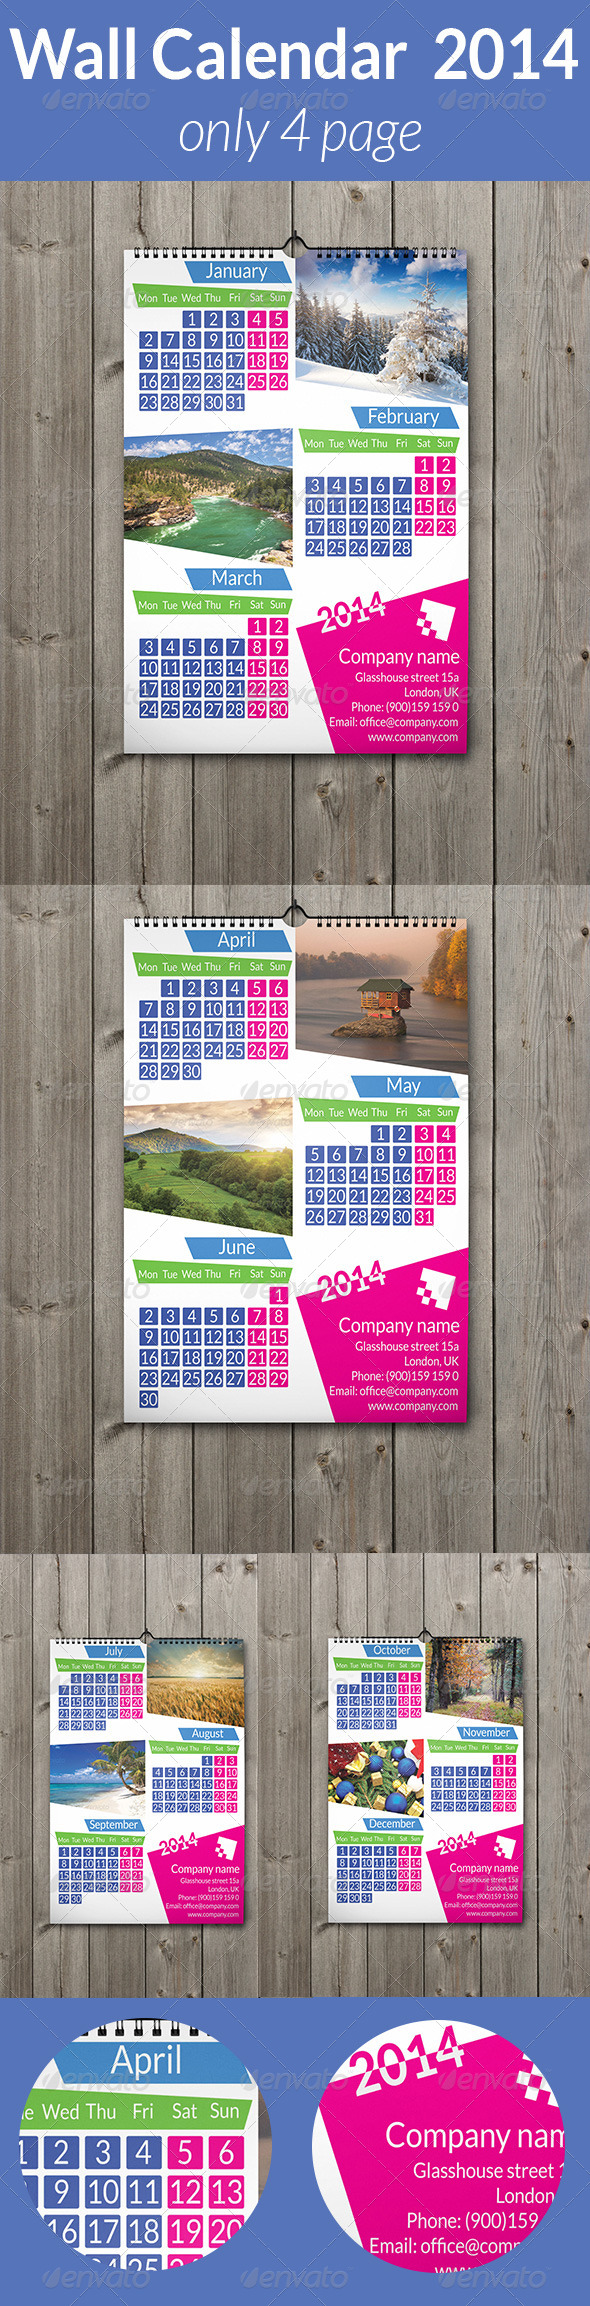 Wall Calendar  2014 Only 4 Page - Calendars Stationery